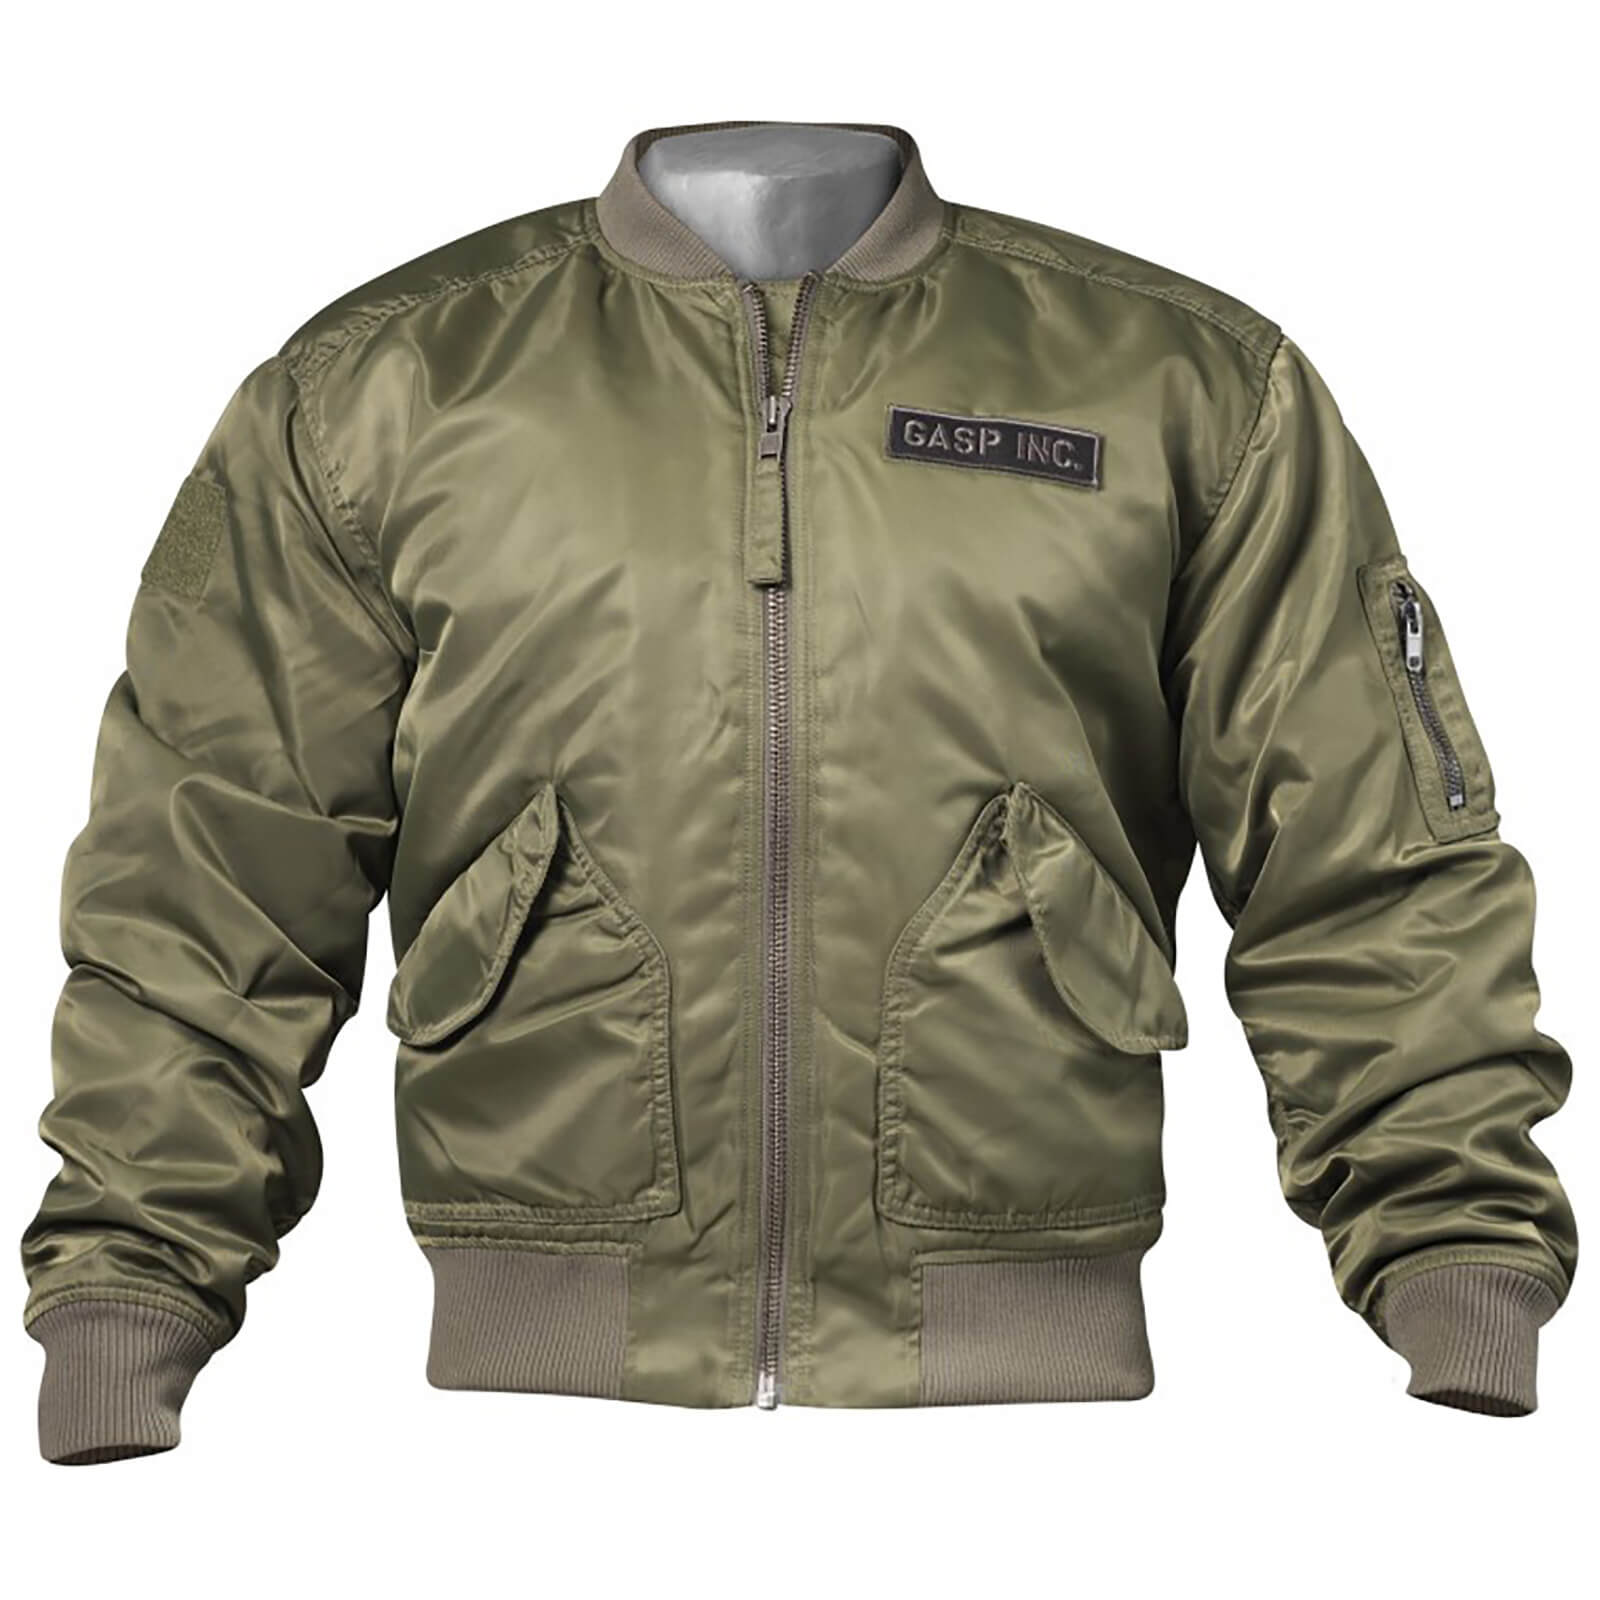 GASP Utility Jacket - Wash Green - M